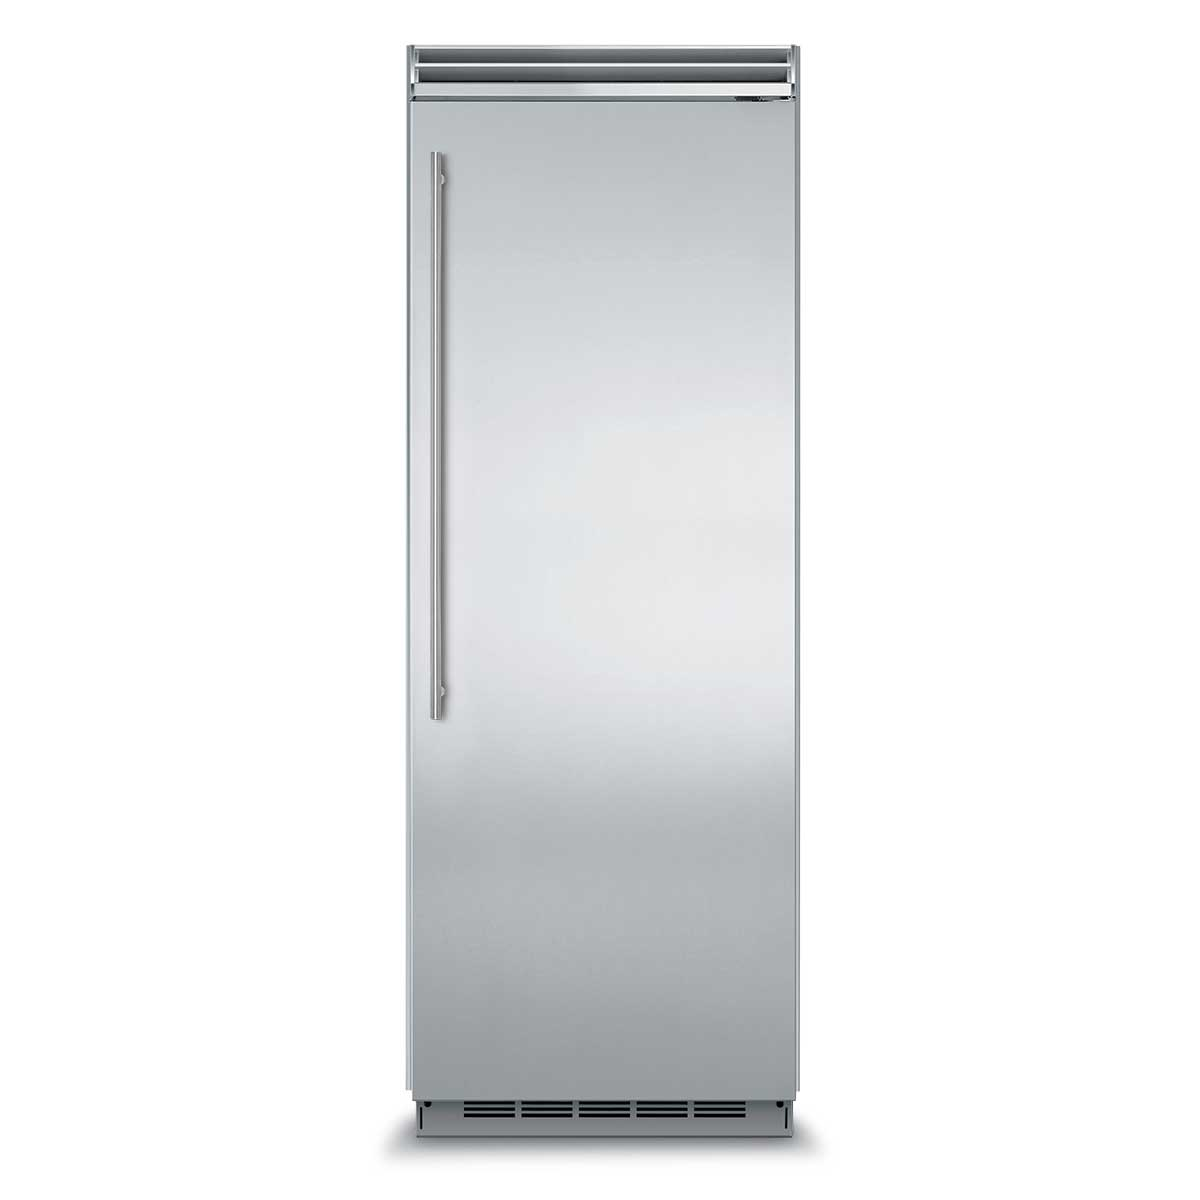 "Marvel  Marvel Professional Built-In 30"" All Freezer- Solid Stainless Steel Door   Right Hinge, Slim Designer Handle"